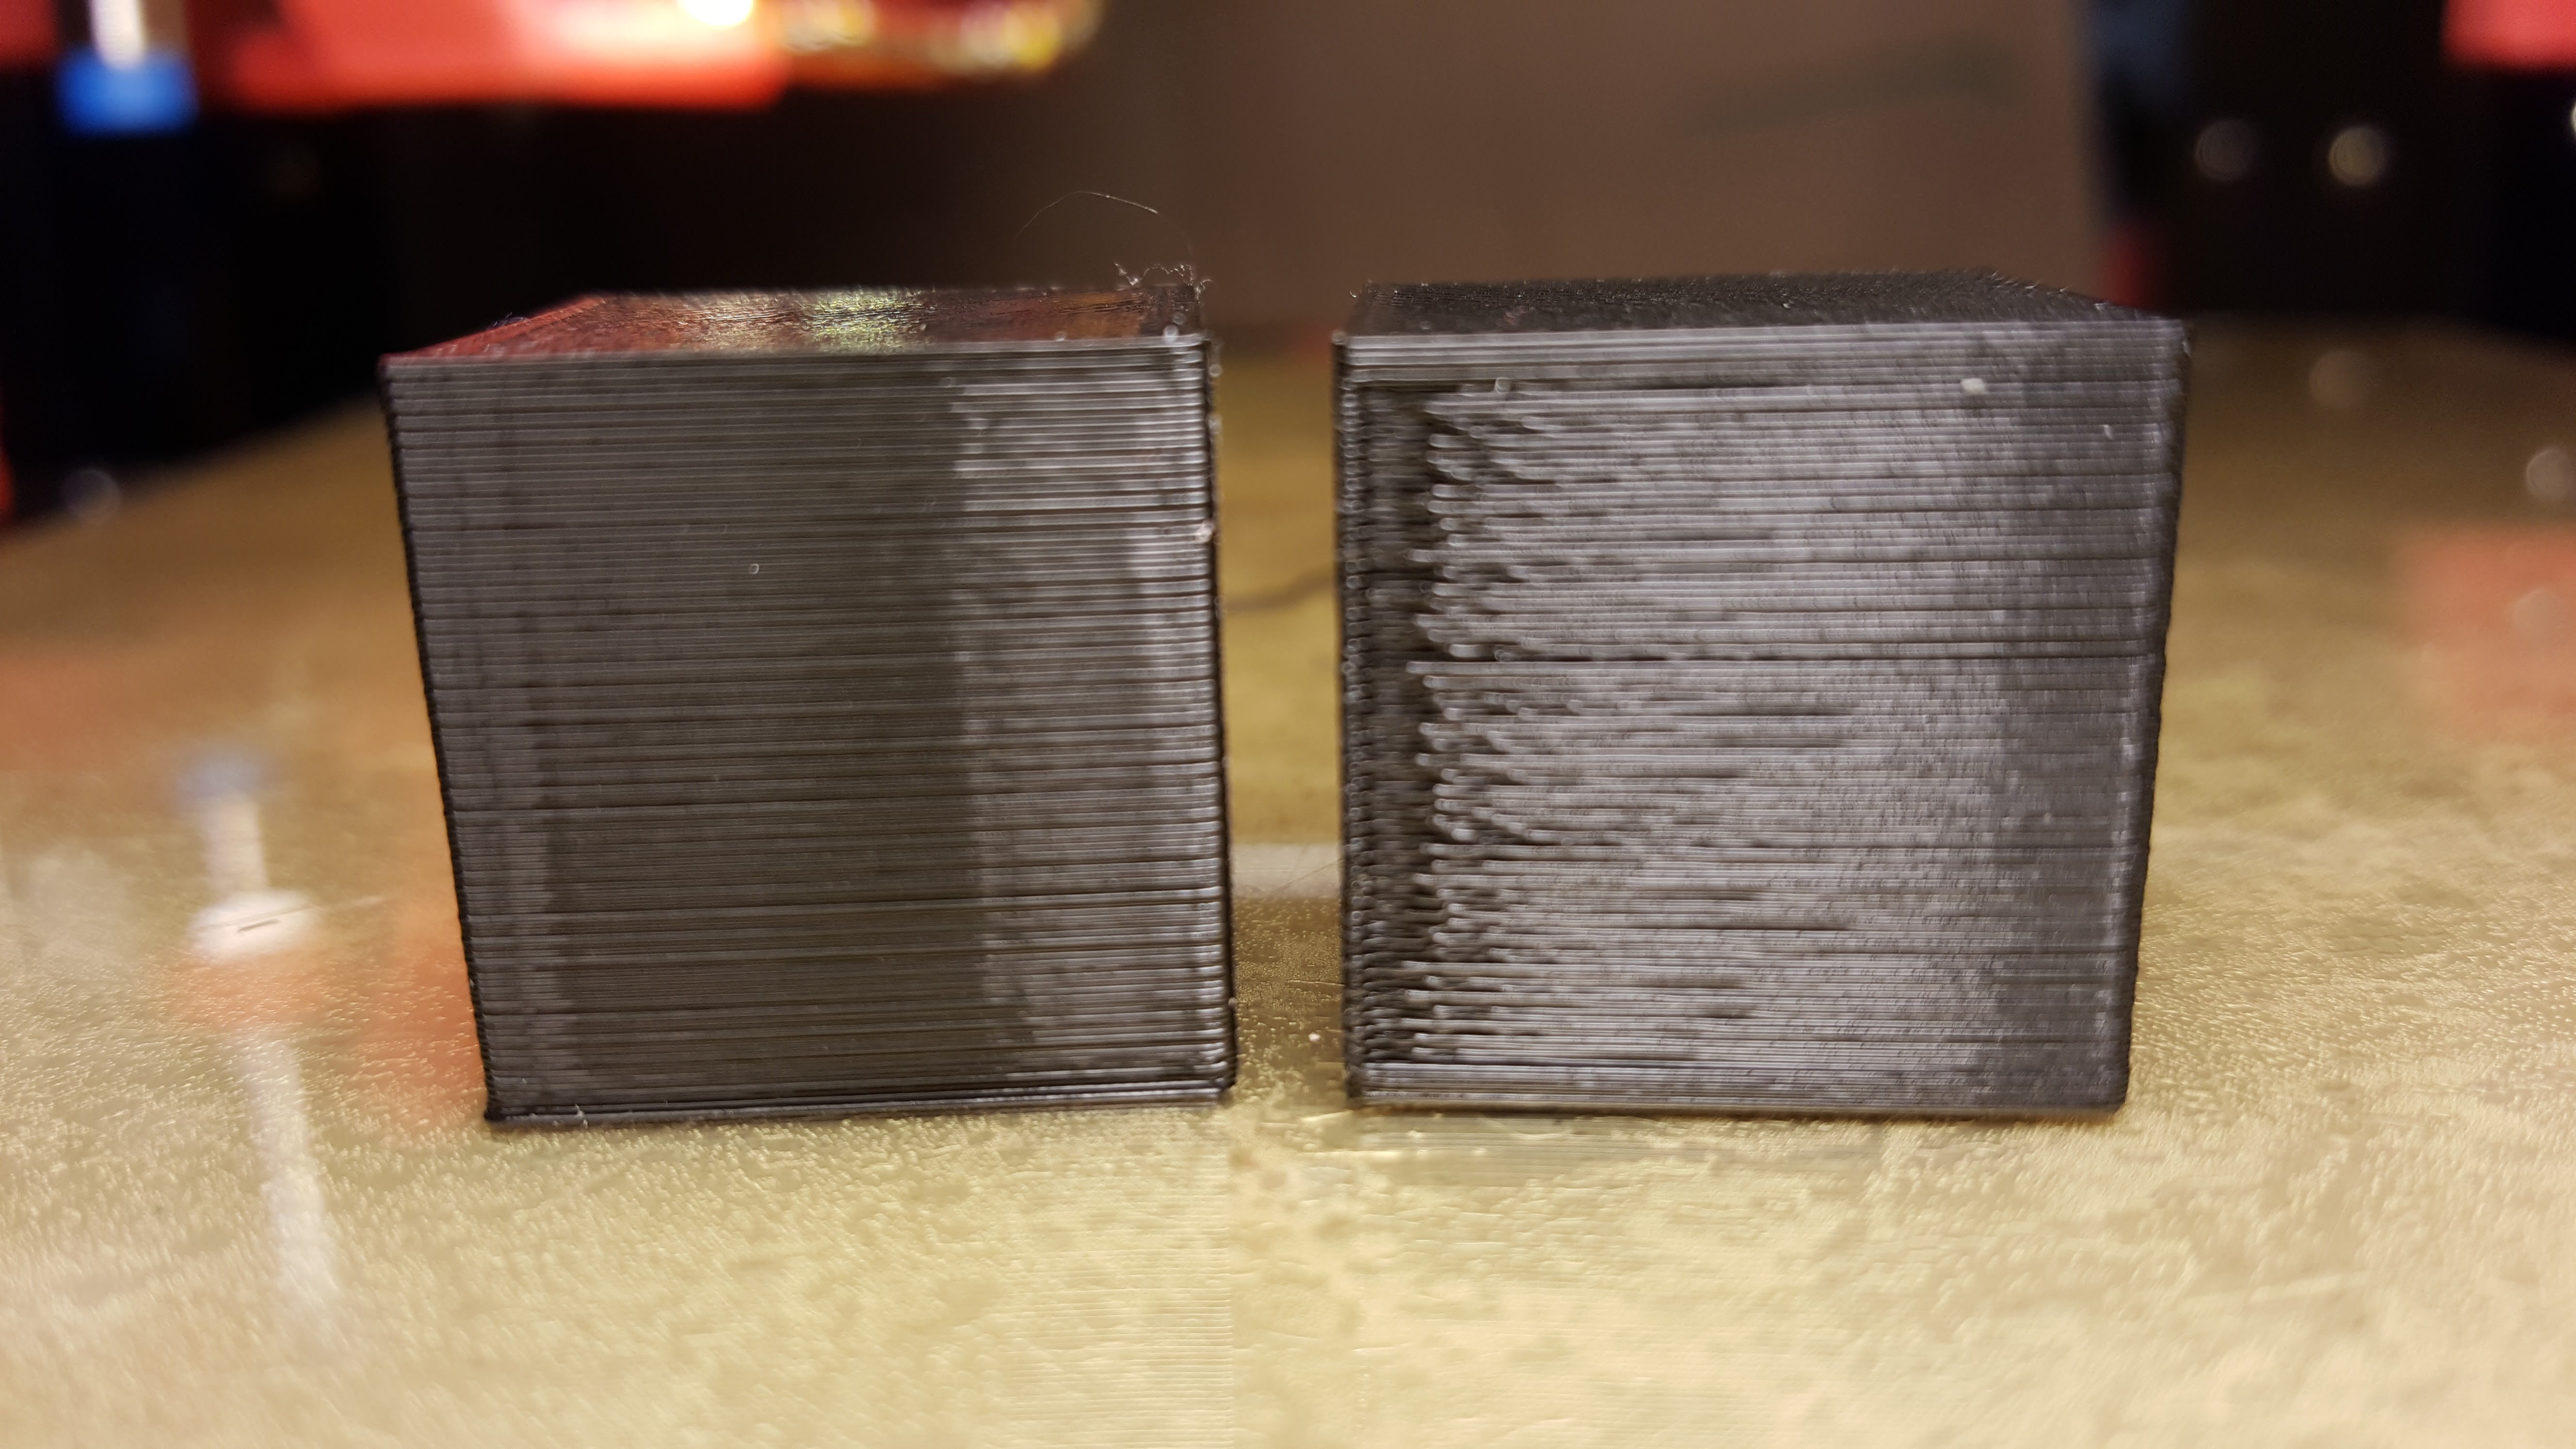 Cura 2 7,3 0 with stock A8 firmware, OK on Repetier - General - Anet